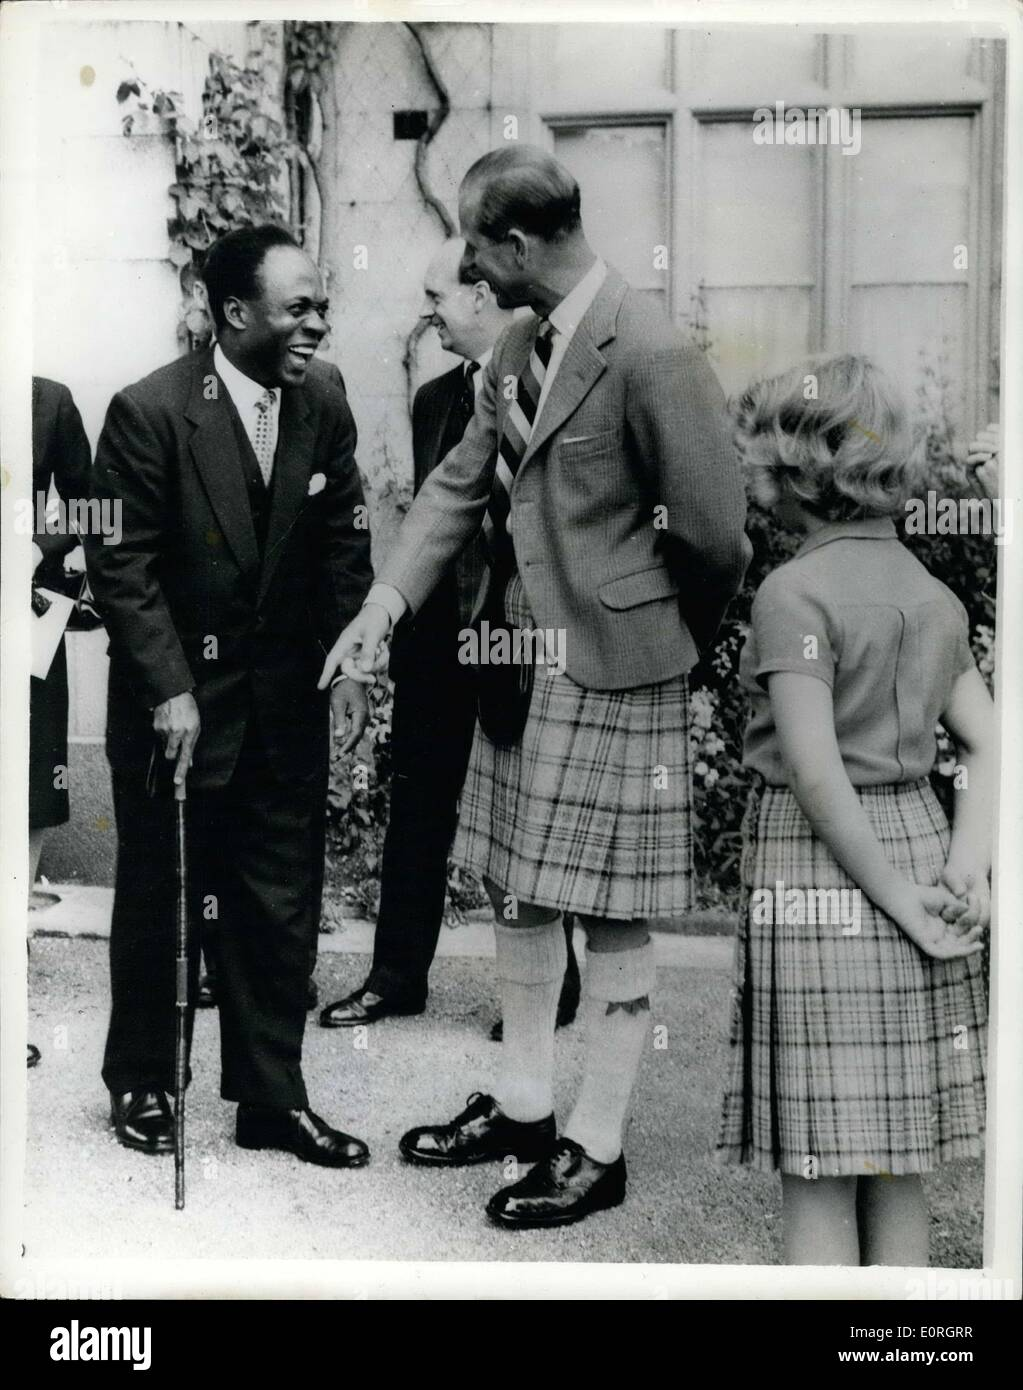 Aug. 13, 1959 - The Queen Honours The Man Who Kept Her Secret Ghana's Prime Minister Visits Her At Balmoral: Dr. Nkrumah, the Prime Minister of Ghana, paid a visit to the Queen ay Balmoral Castle yesterday to discuss plans and a new date for the royal visit to Ghana, which was cancelled because of the Queen's pregnancy. During his stay as guest of the Queen Dr.Nkrumah was made a Privy Councillor. Photo Shows Prince Philip has a joke with Dr.Nkrumah about his walking-stick at Balmoral yesterday, watched by Princess Anne. - Stock Image